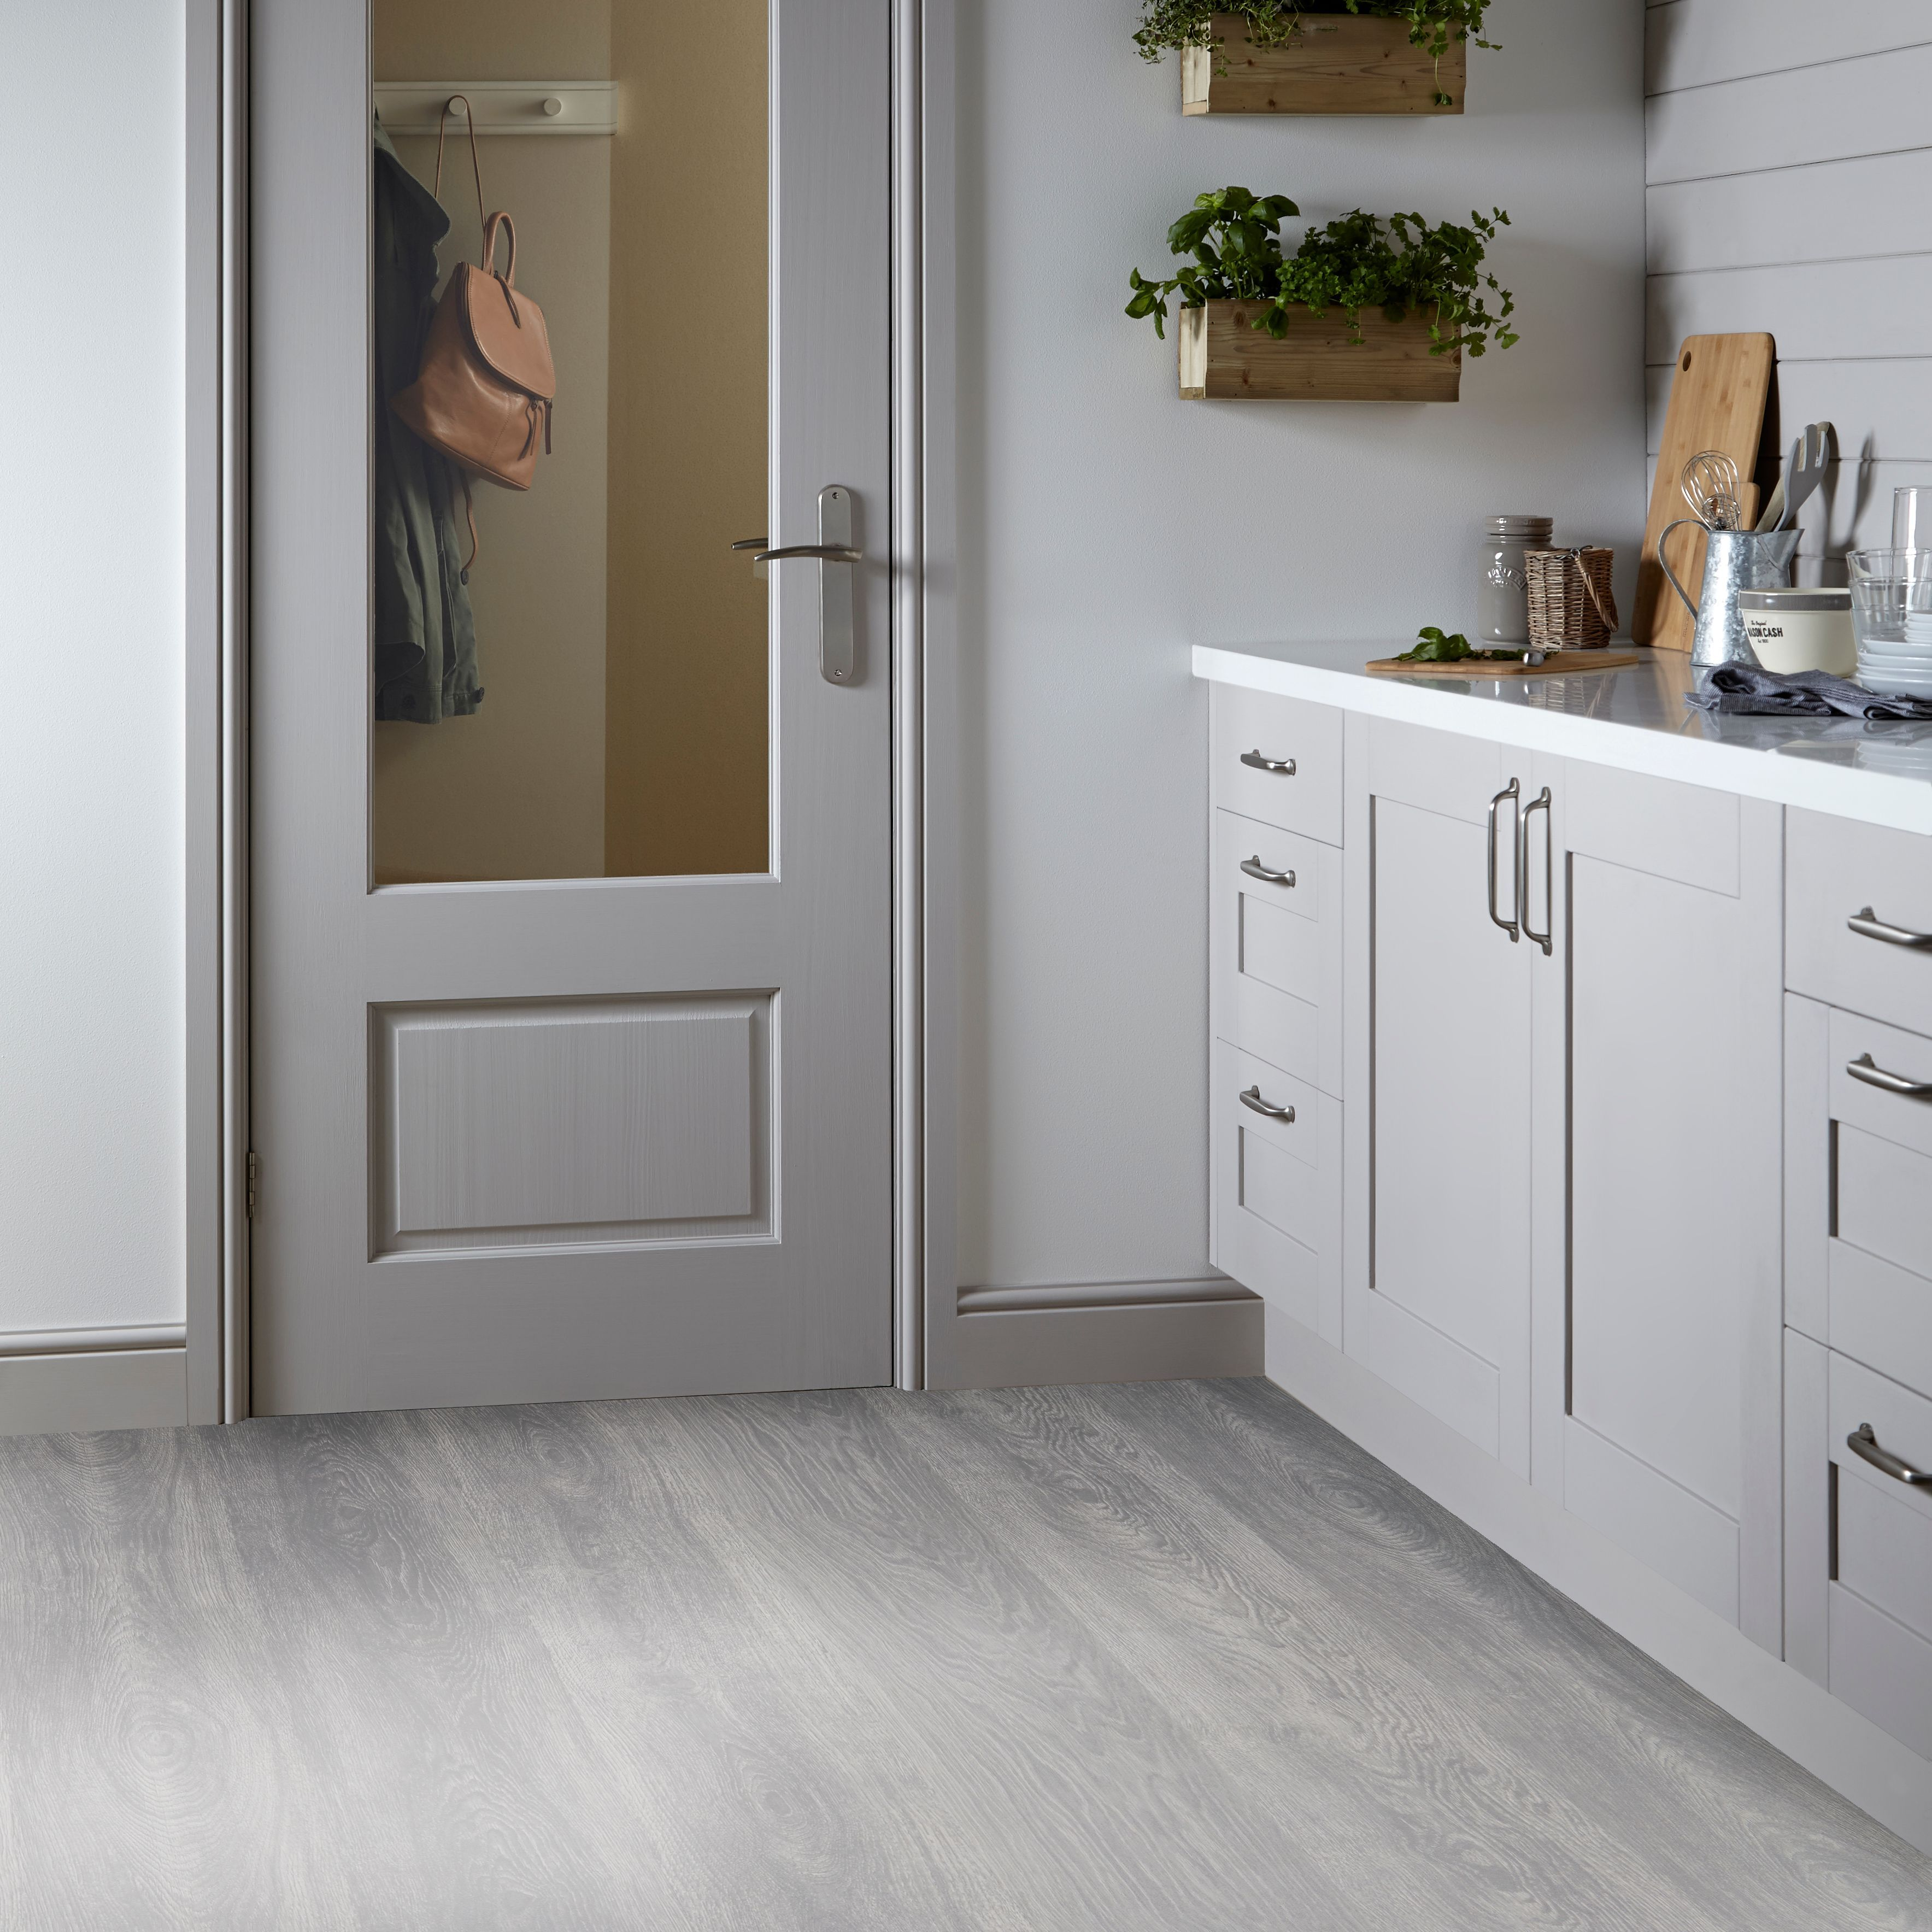 Isalenia Whitewood Effect Matt Vinyl Flooring 6 M B Q For All Your Home And Garden Supplies And Advi White Vinyl Flooring Vinyl Tile Bathroom Vinyl Flooring